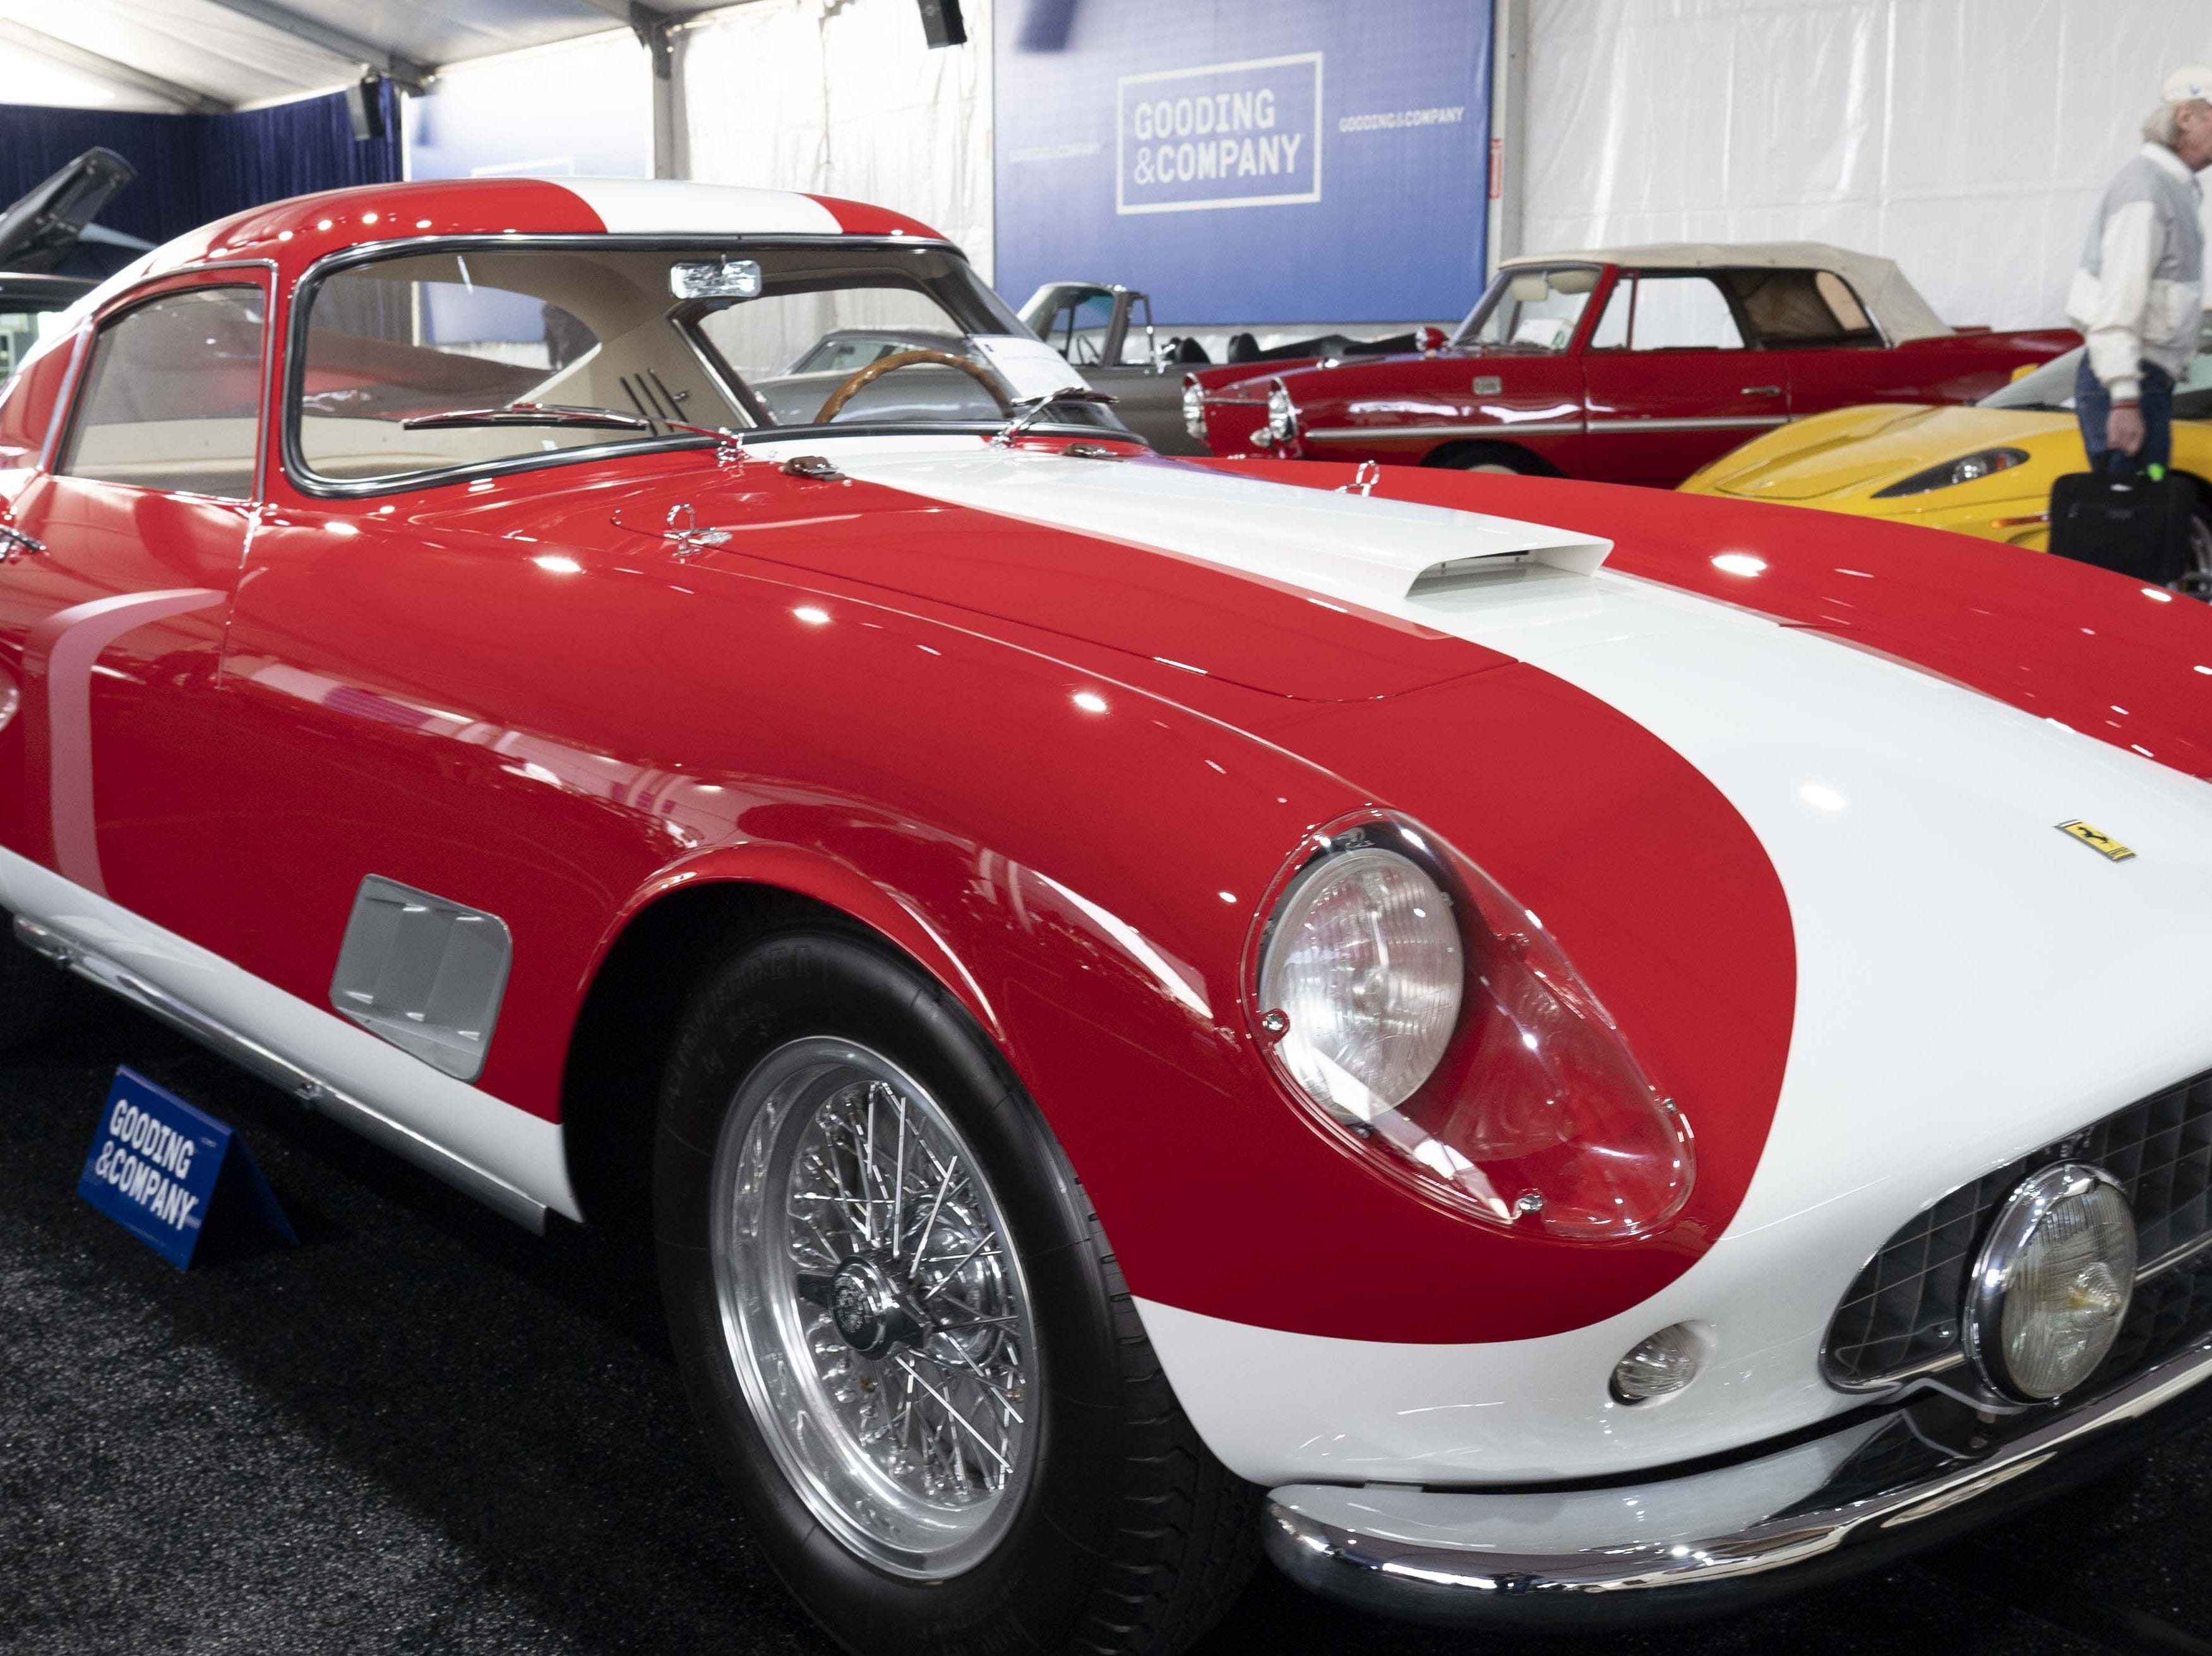 Car fans look at the 1958 Ferrari 250 GT Tour de France Berlinetta car for auction at Gooding & Co.'s preview day in Scottsdale.